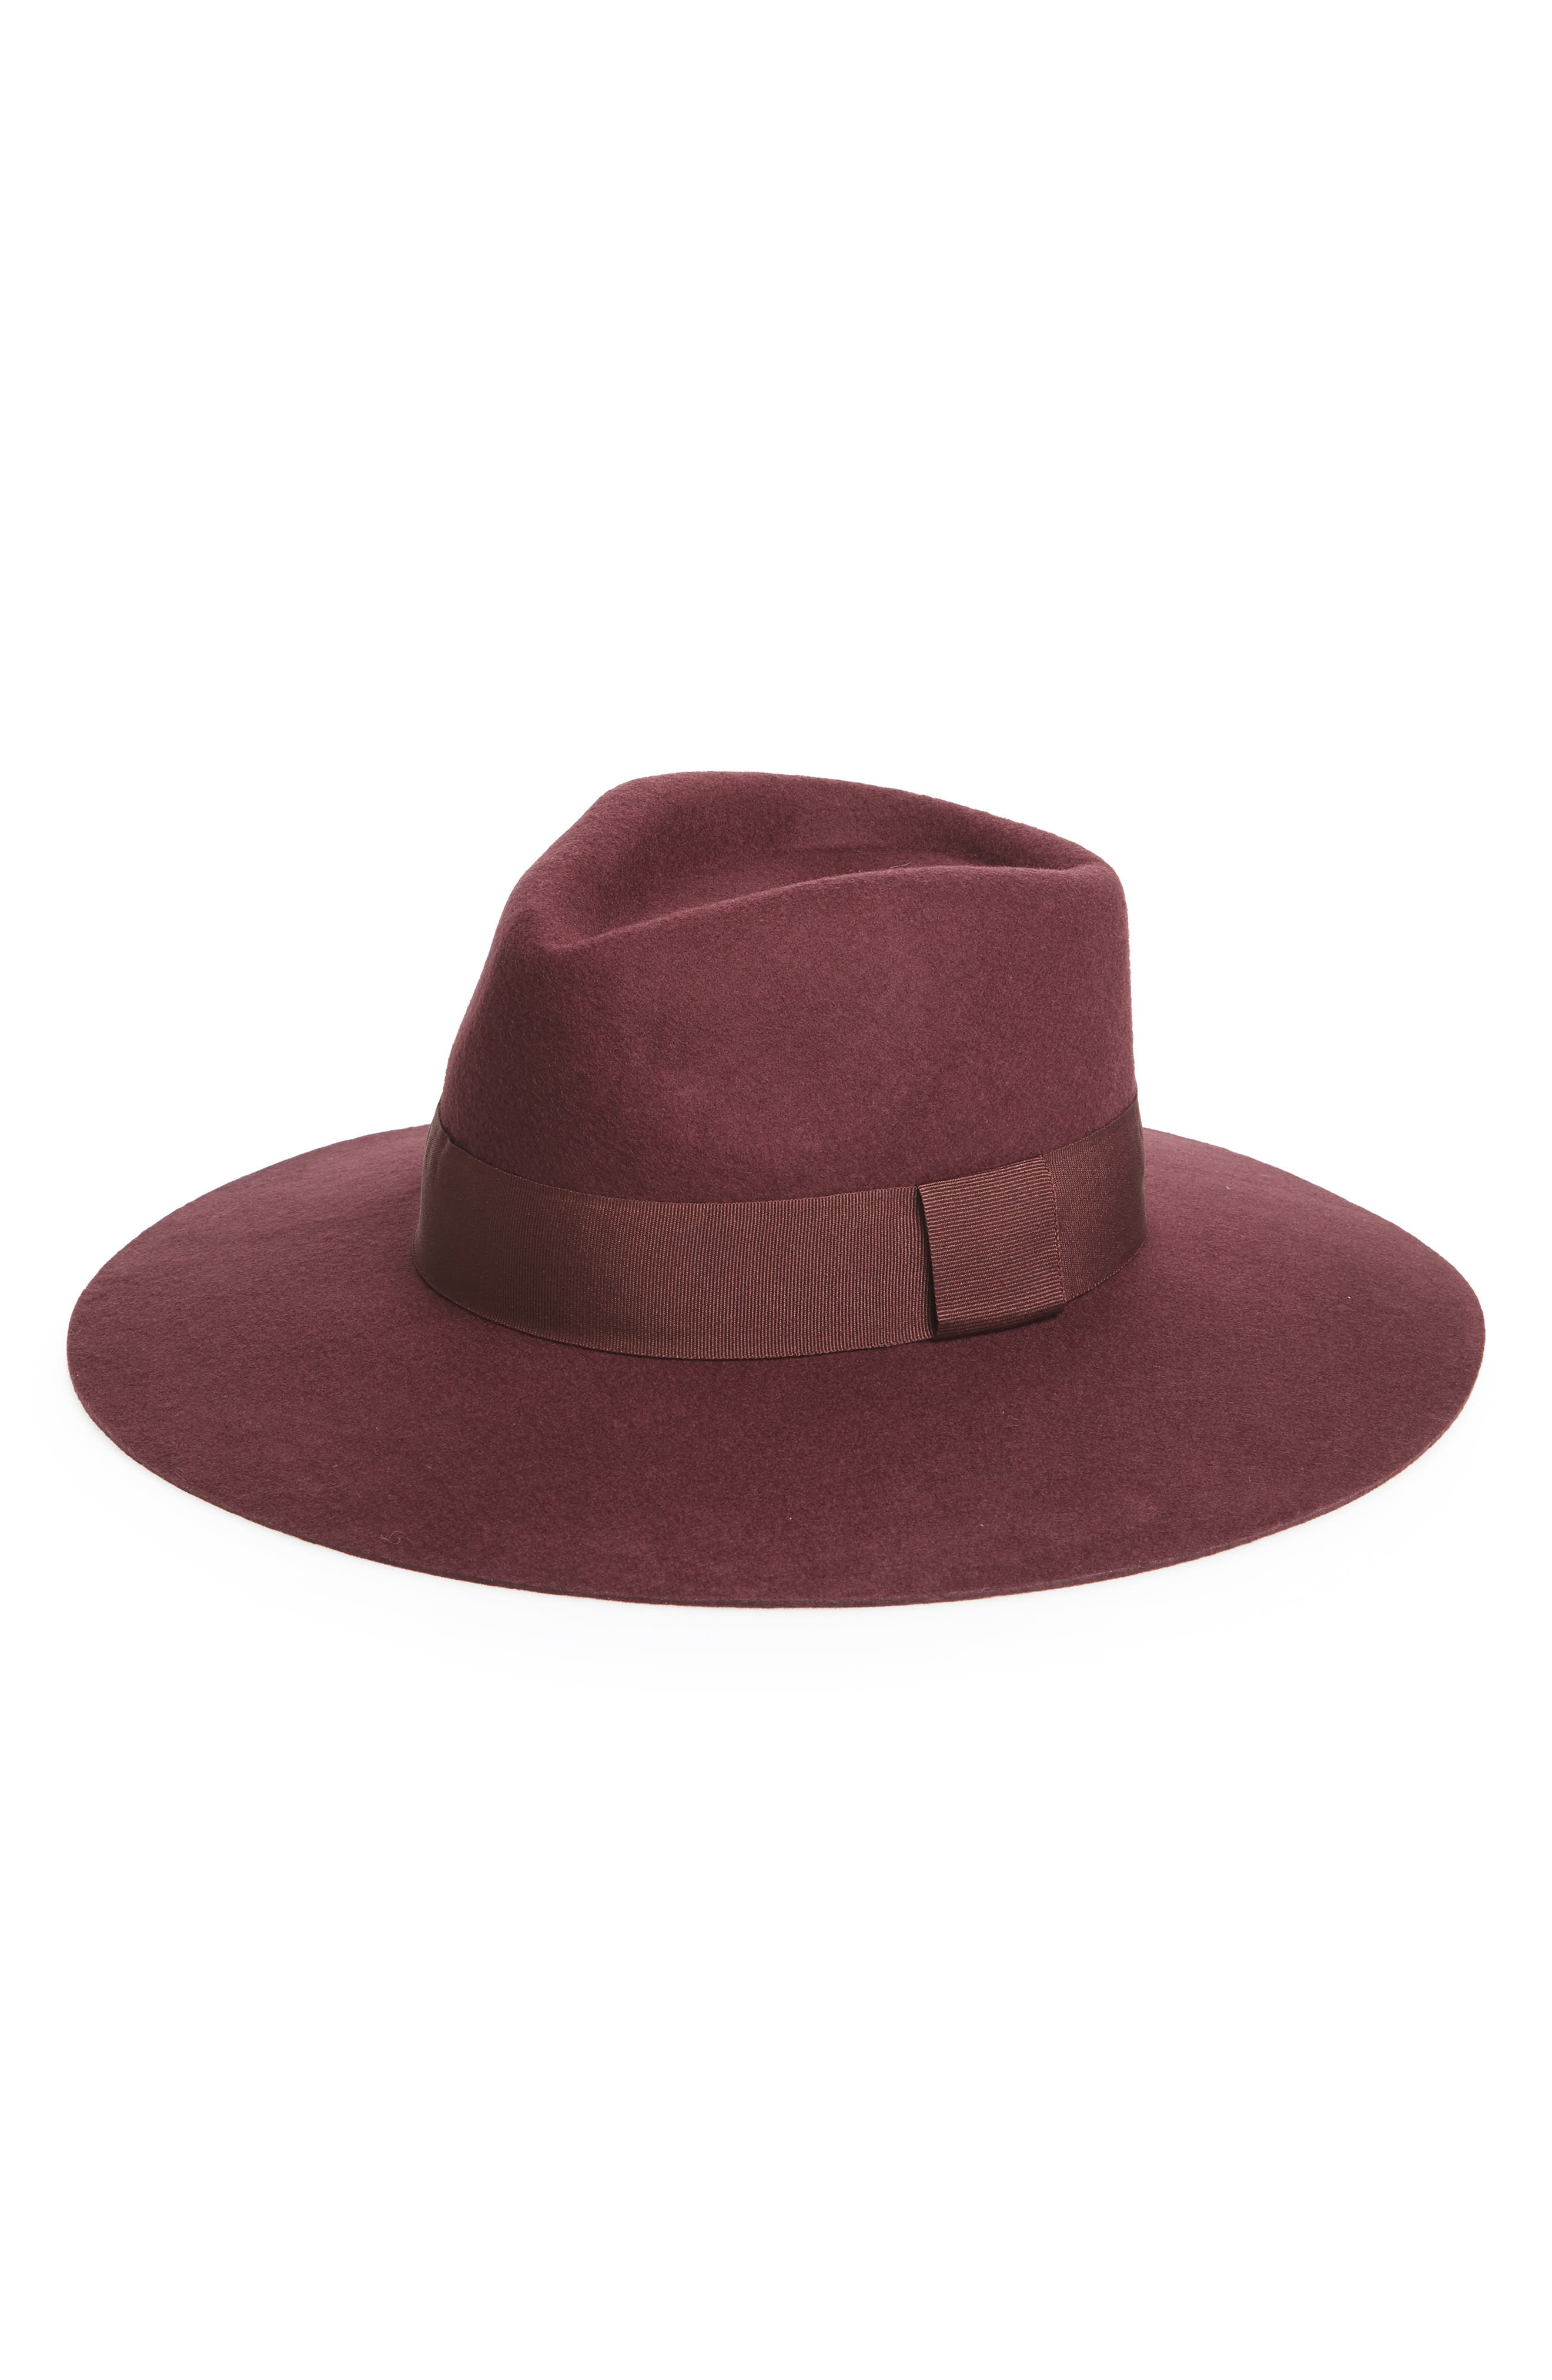 Wool Panama Hat,                         Main,                         color,